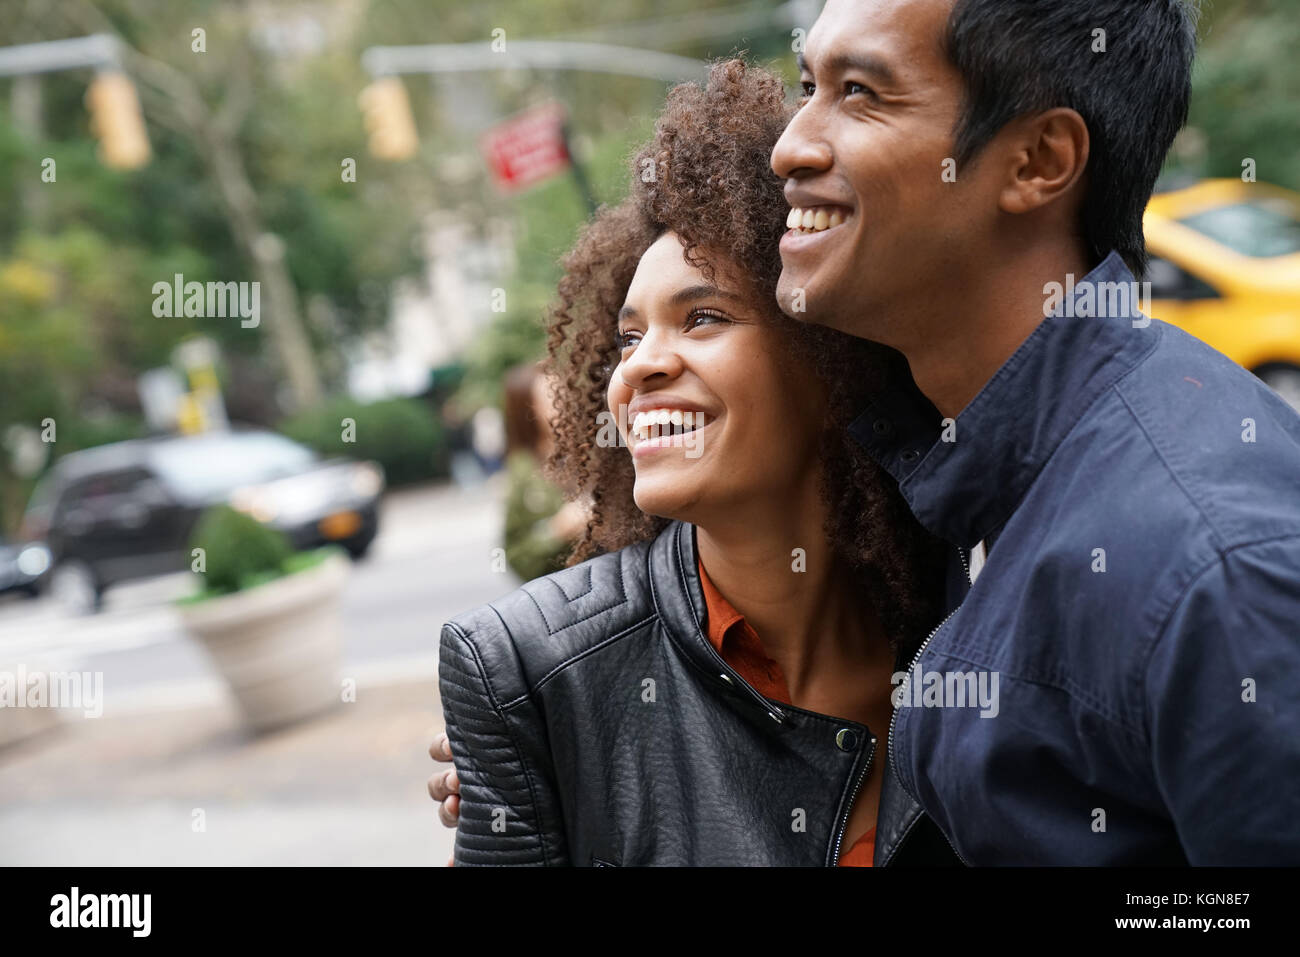 Ethnic couple walking in New york city street - Stock Image